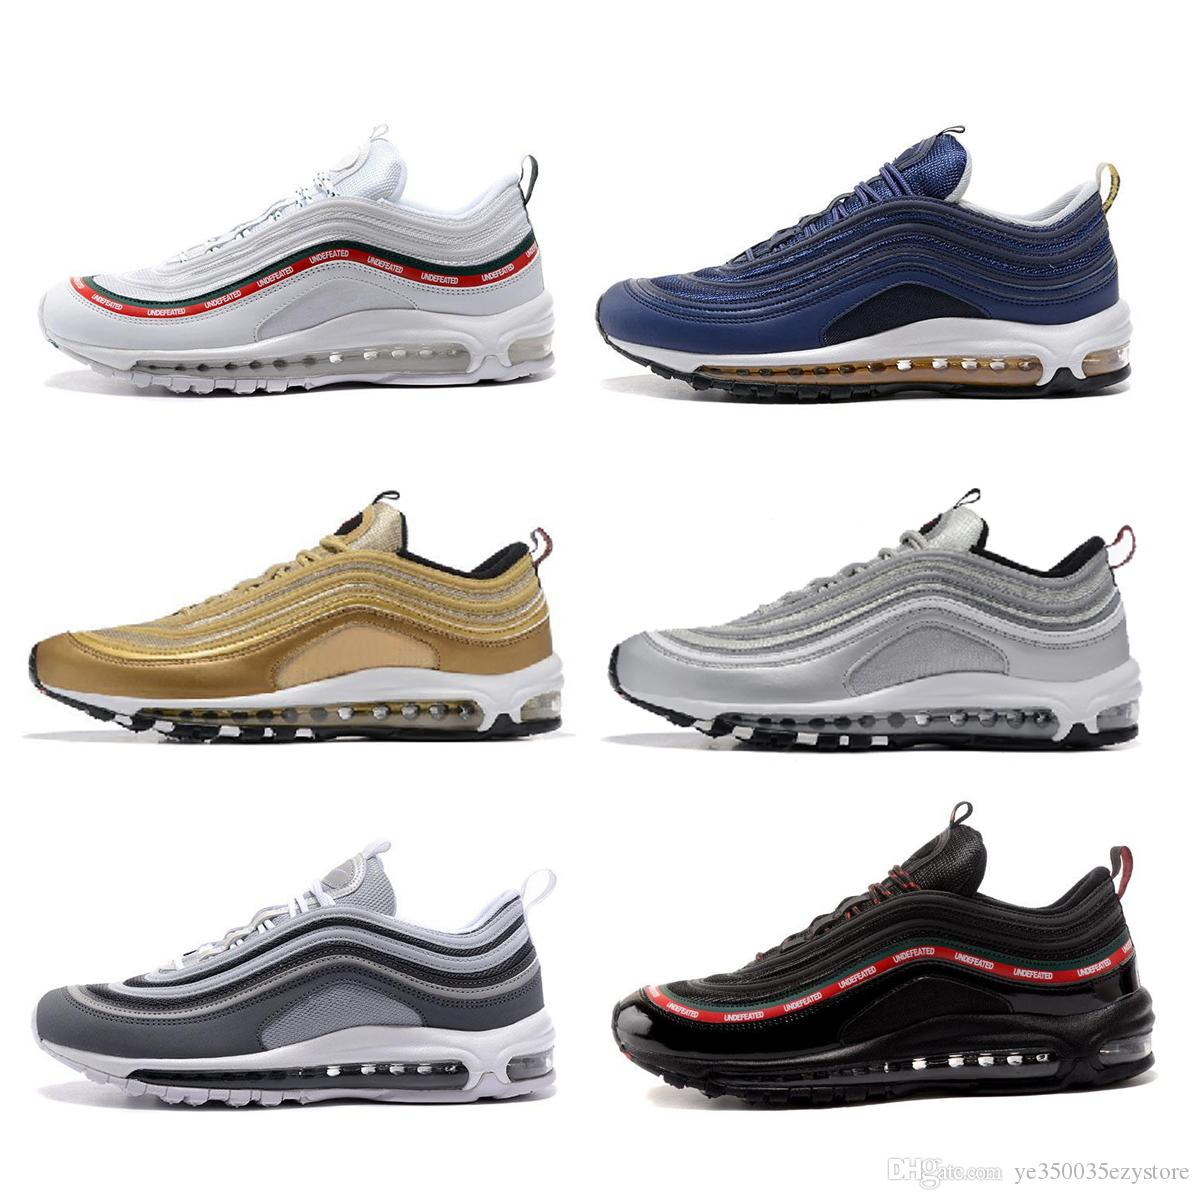 online retailer 8c869 ed500 ... coupon code for acquista nike air max 97 coppie di uomini e donne in  bianco e